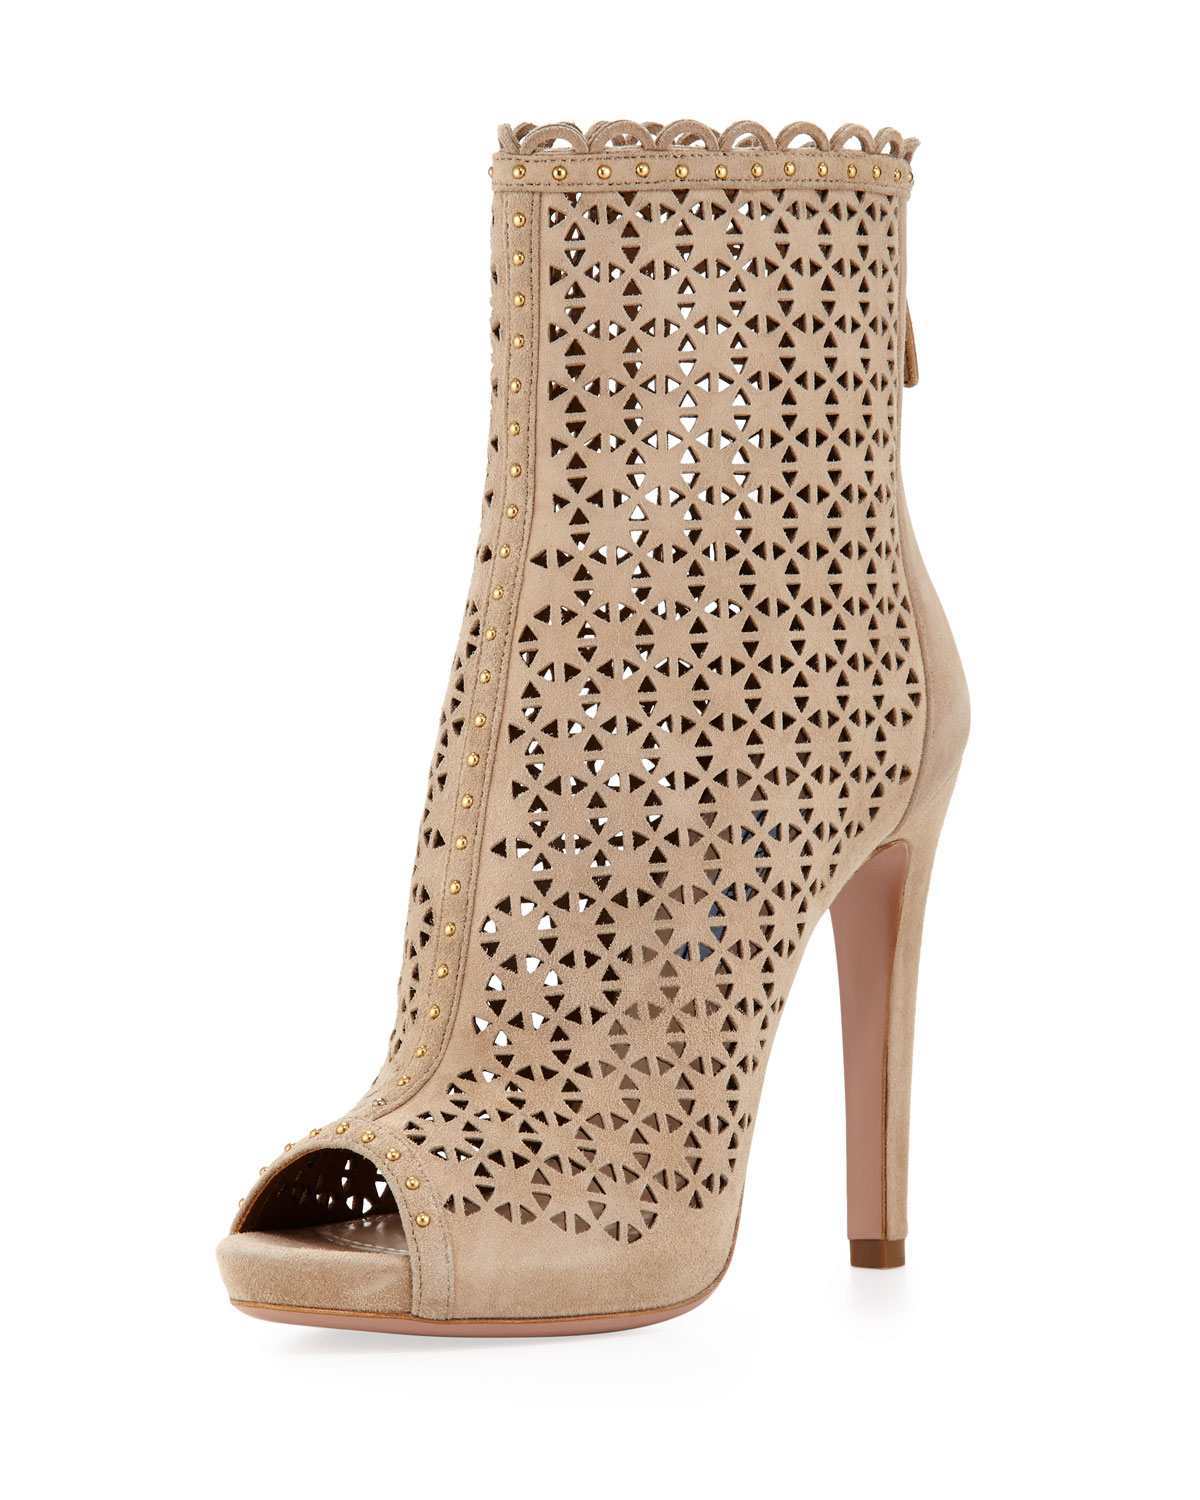 55% Off Prada Perforated Suede Ankle Boot, Sand